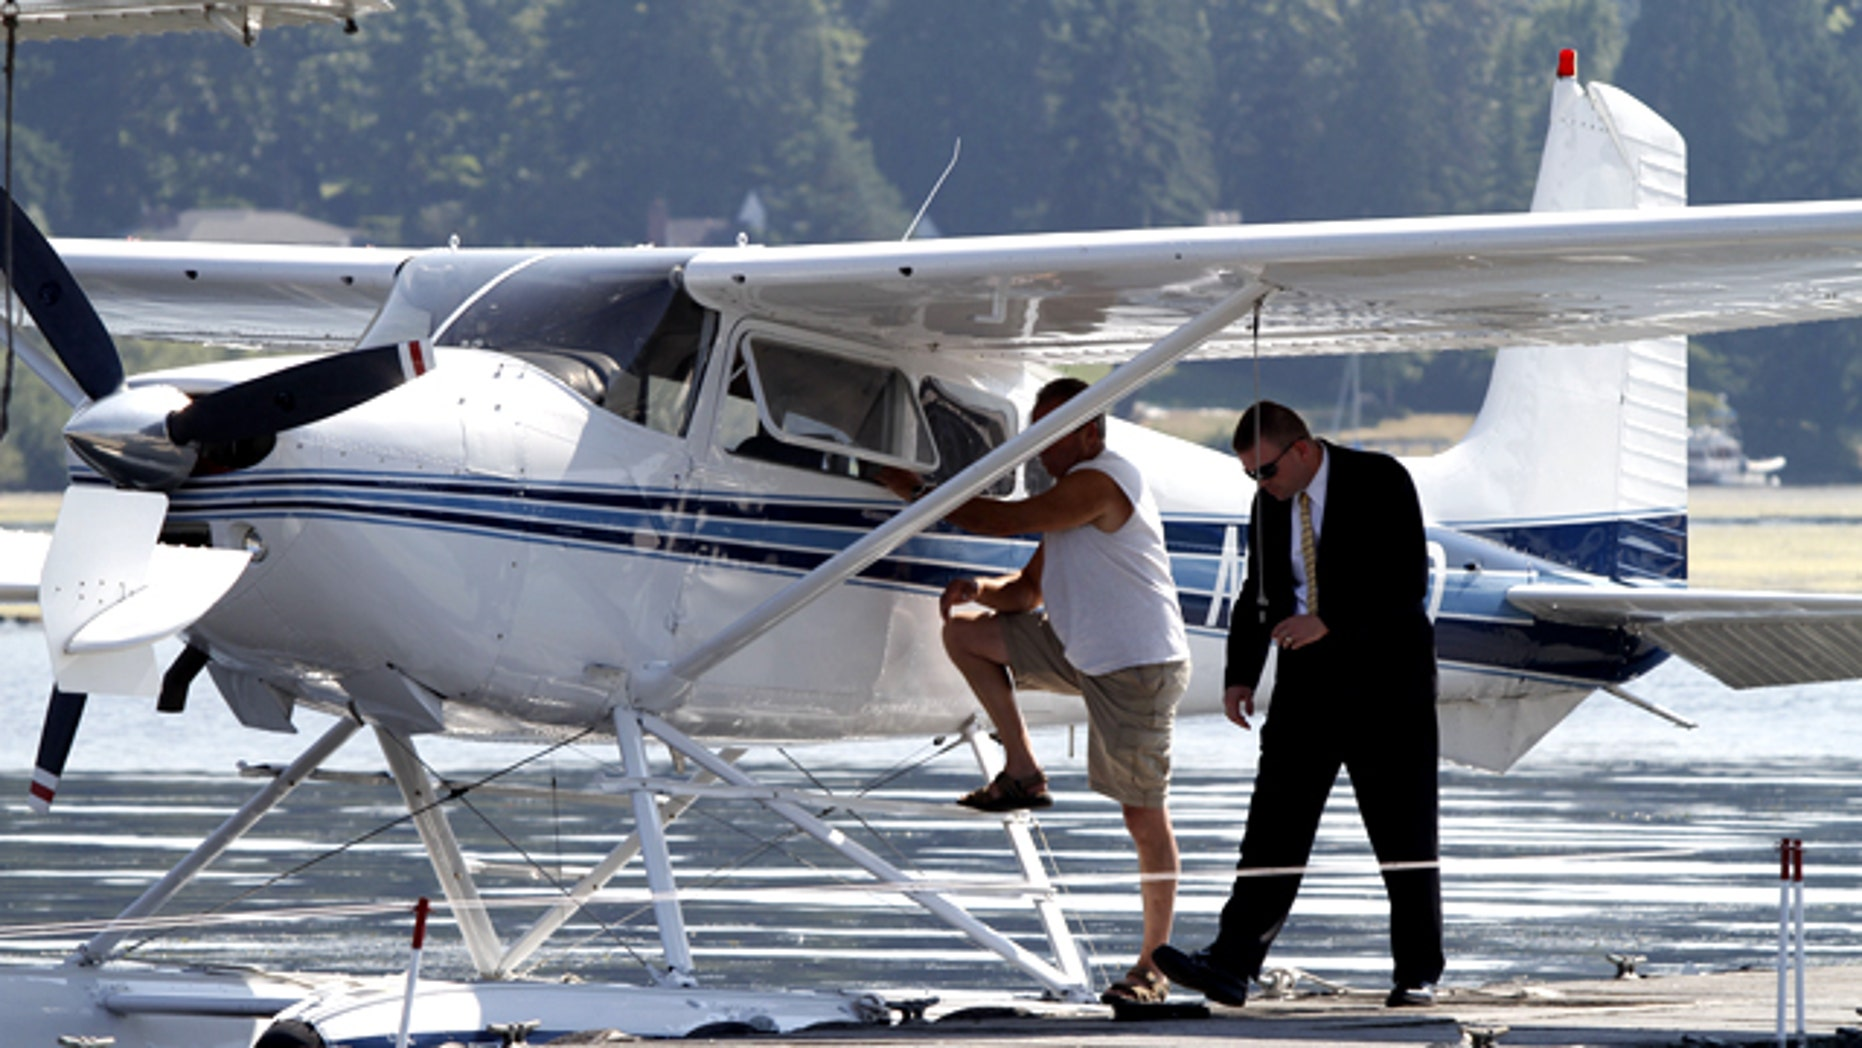 Lee Daily, left, is interviewed by an agent of the United States Secret Service at Kenmore Air Tuesday, Aug. 17, 2010 in Kenmore, Wash. Daily's float plane, crossing the Cascade mountain range headed to Seattle from Lake Chelan, violated the exclusion zone set up to protect President Barack Obama during his trip to the west coast. Daily was ordered to land at Kenmore Air Harbor.